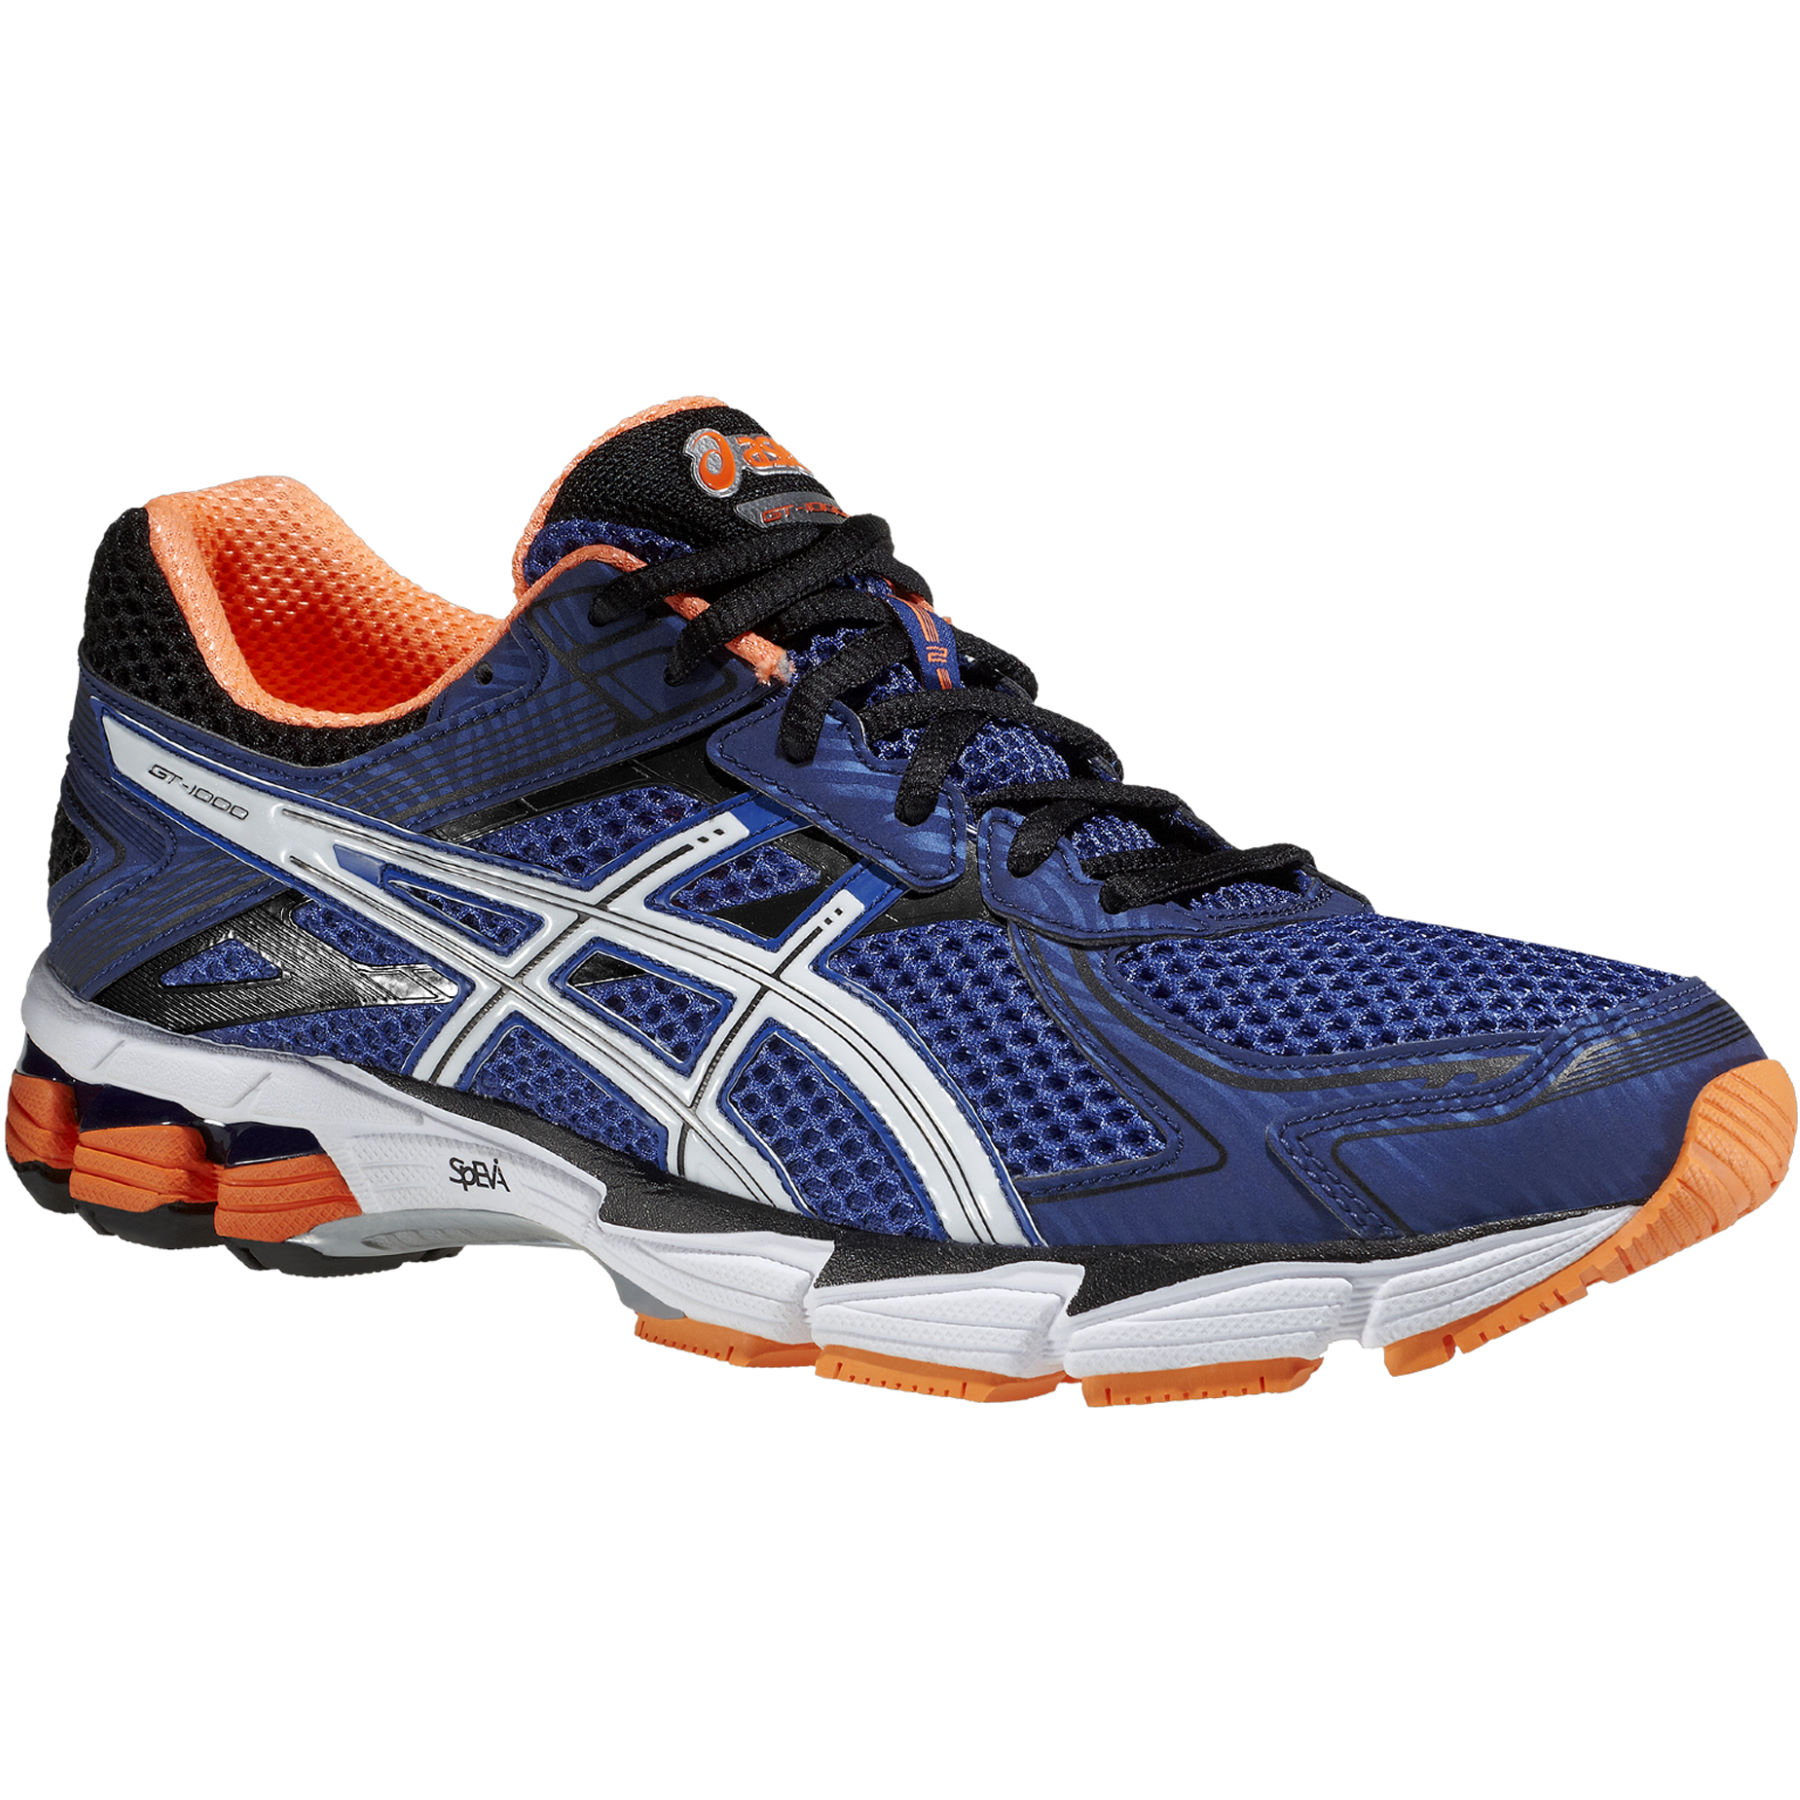 Zapatillas asics running 2014 zapatillas running asics gel - Asics Gt 1000 2 Shoes Aw14